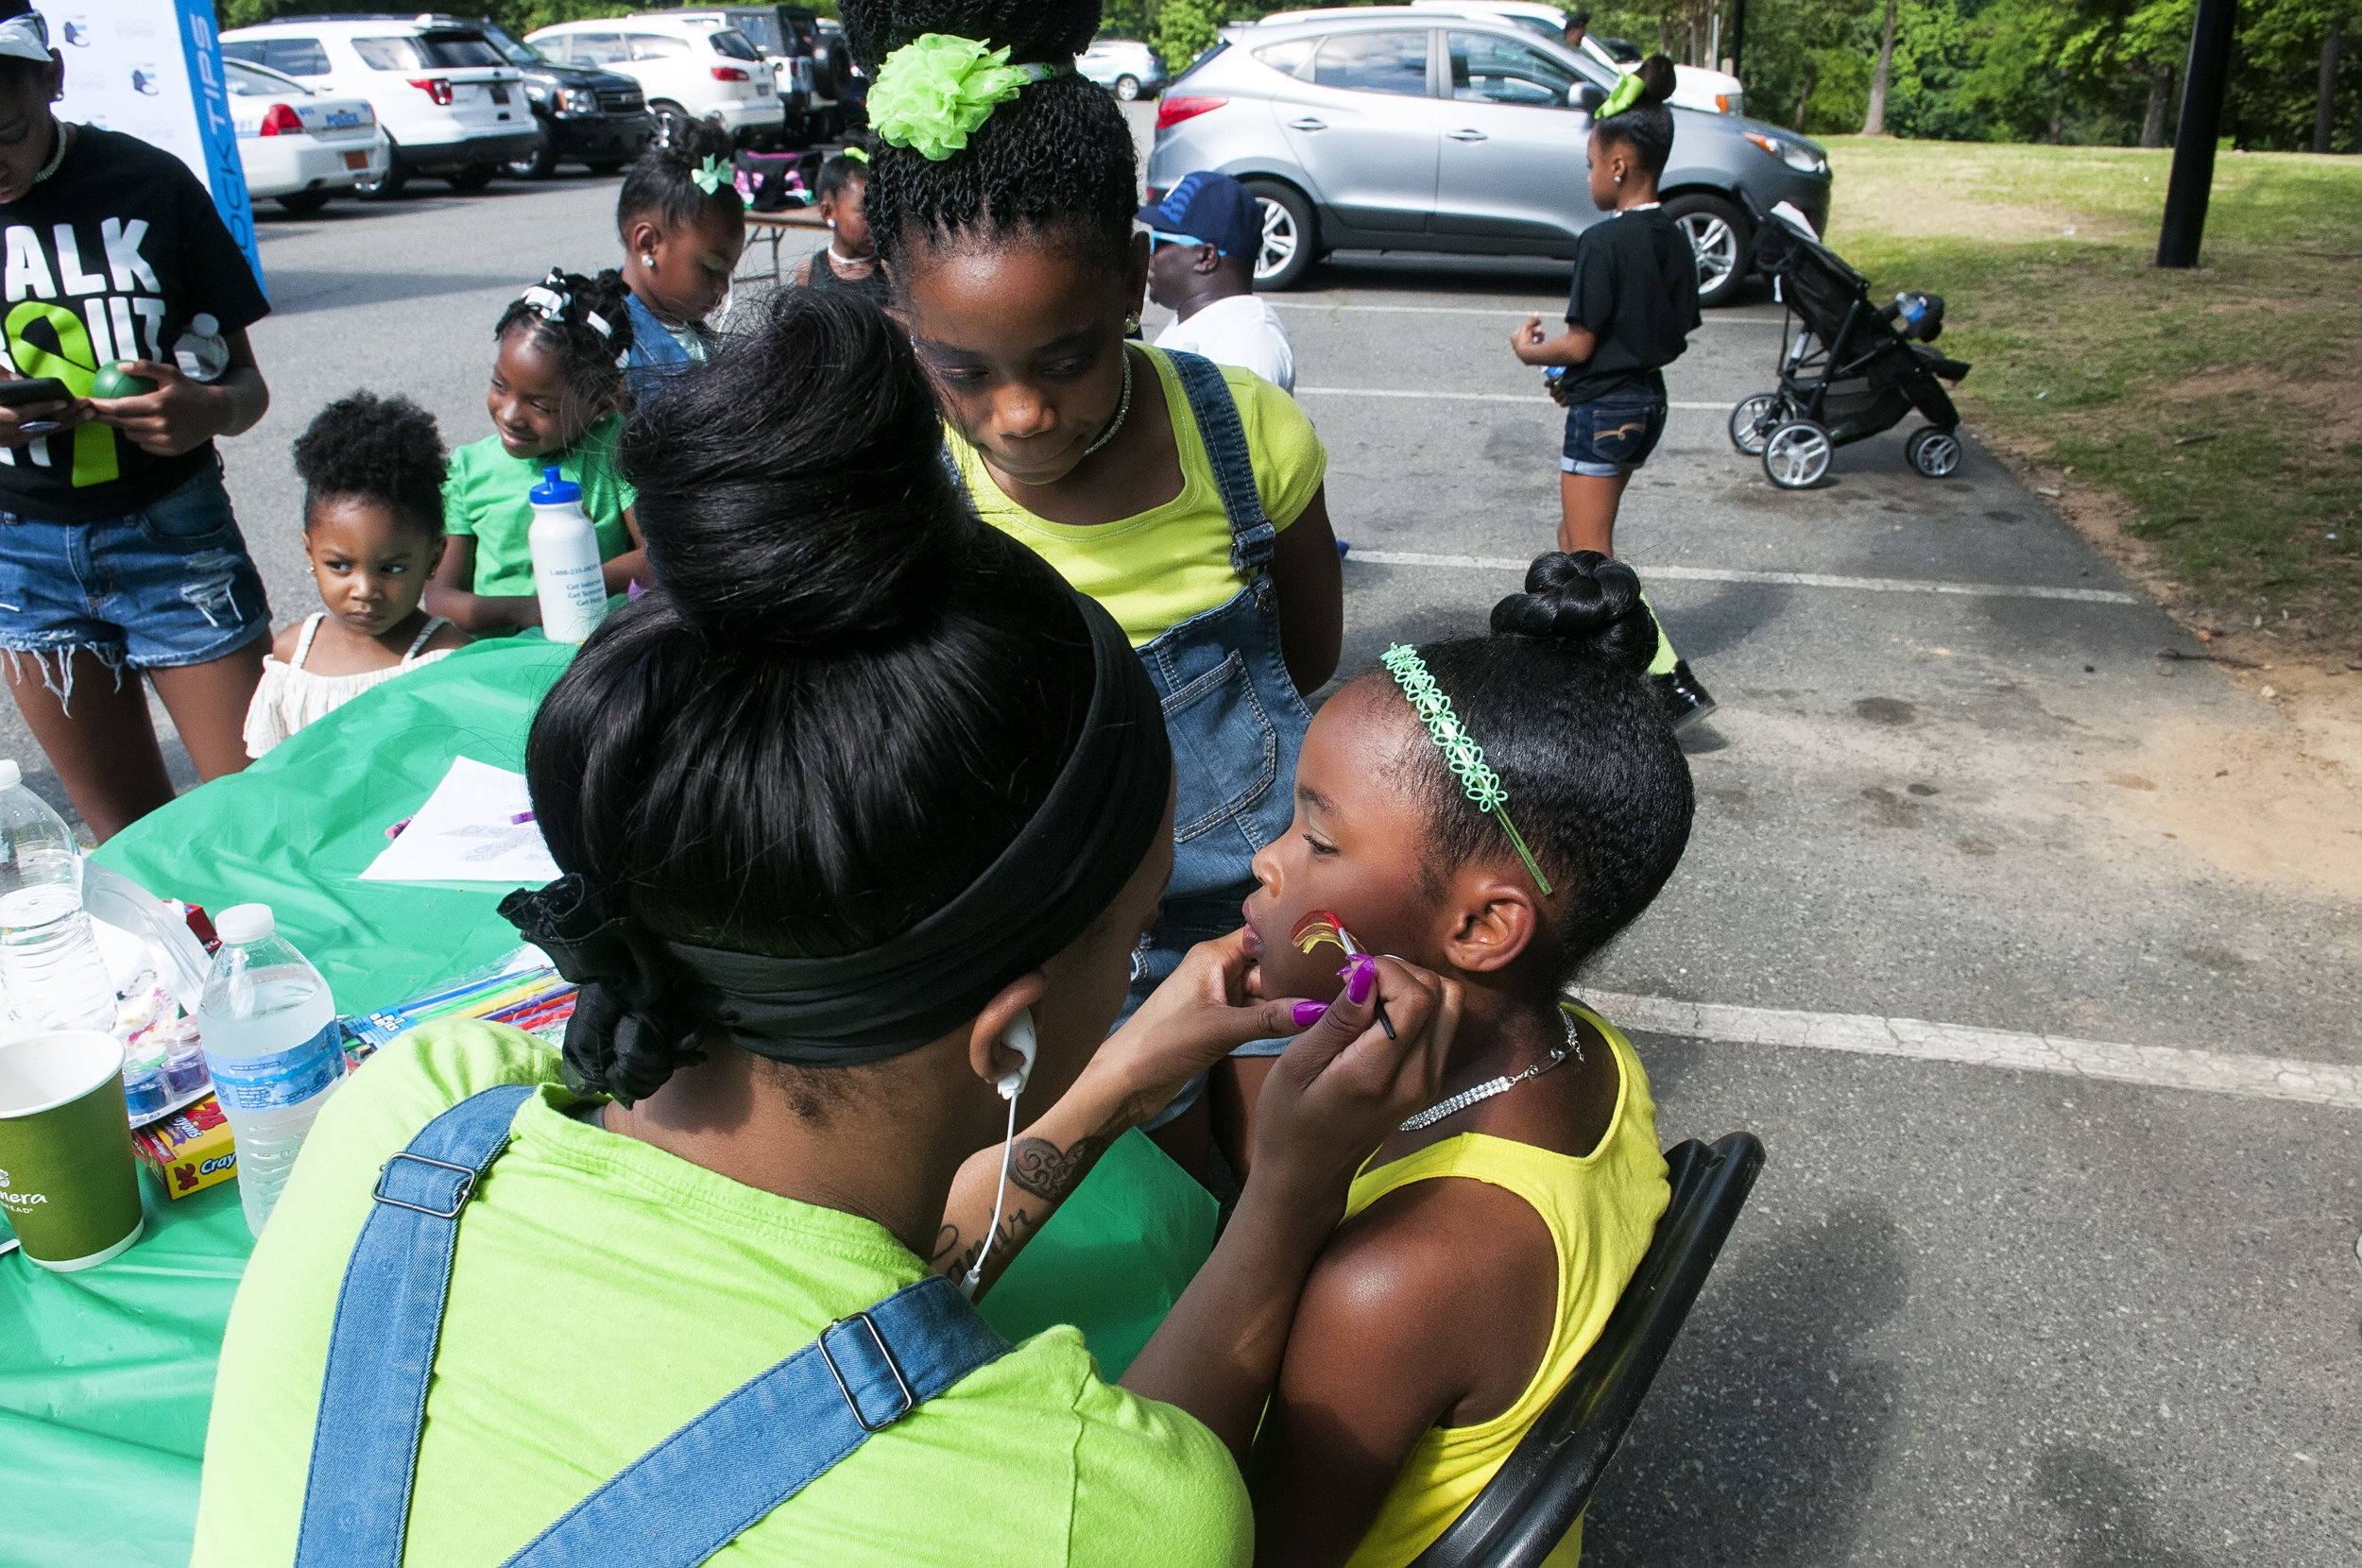 2nd Annual Let's Talk About It Mental Health Awareness Walk @ Park Rd Park 5-20-17 by Jon Strayhorn 057.jpg